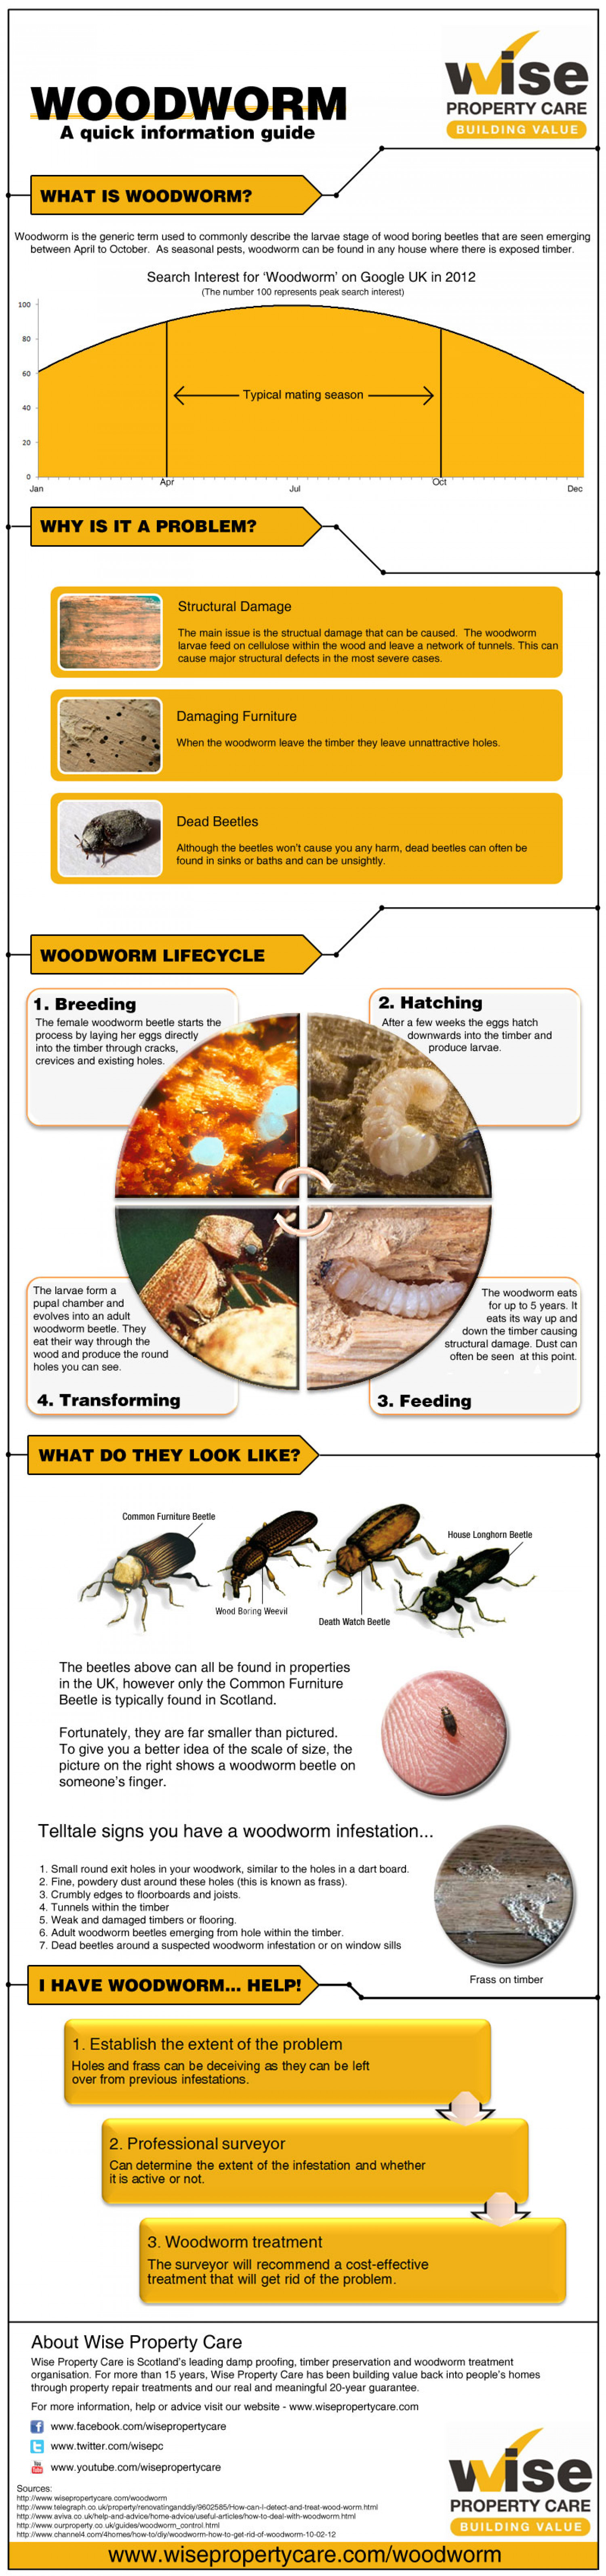 Woodworm information, help and advice Infographic